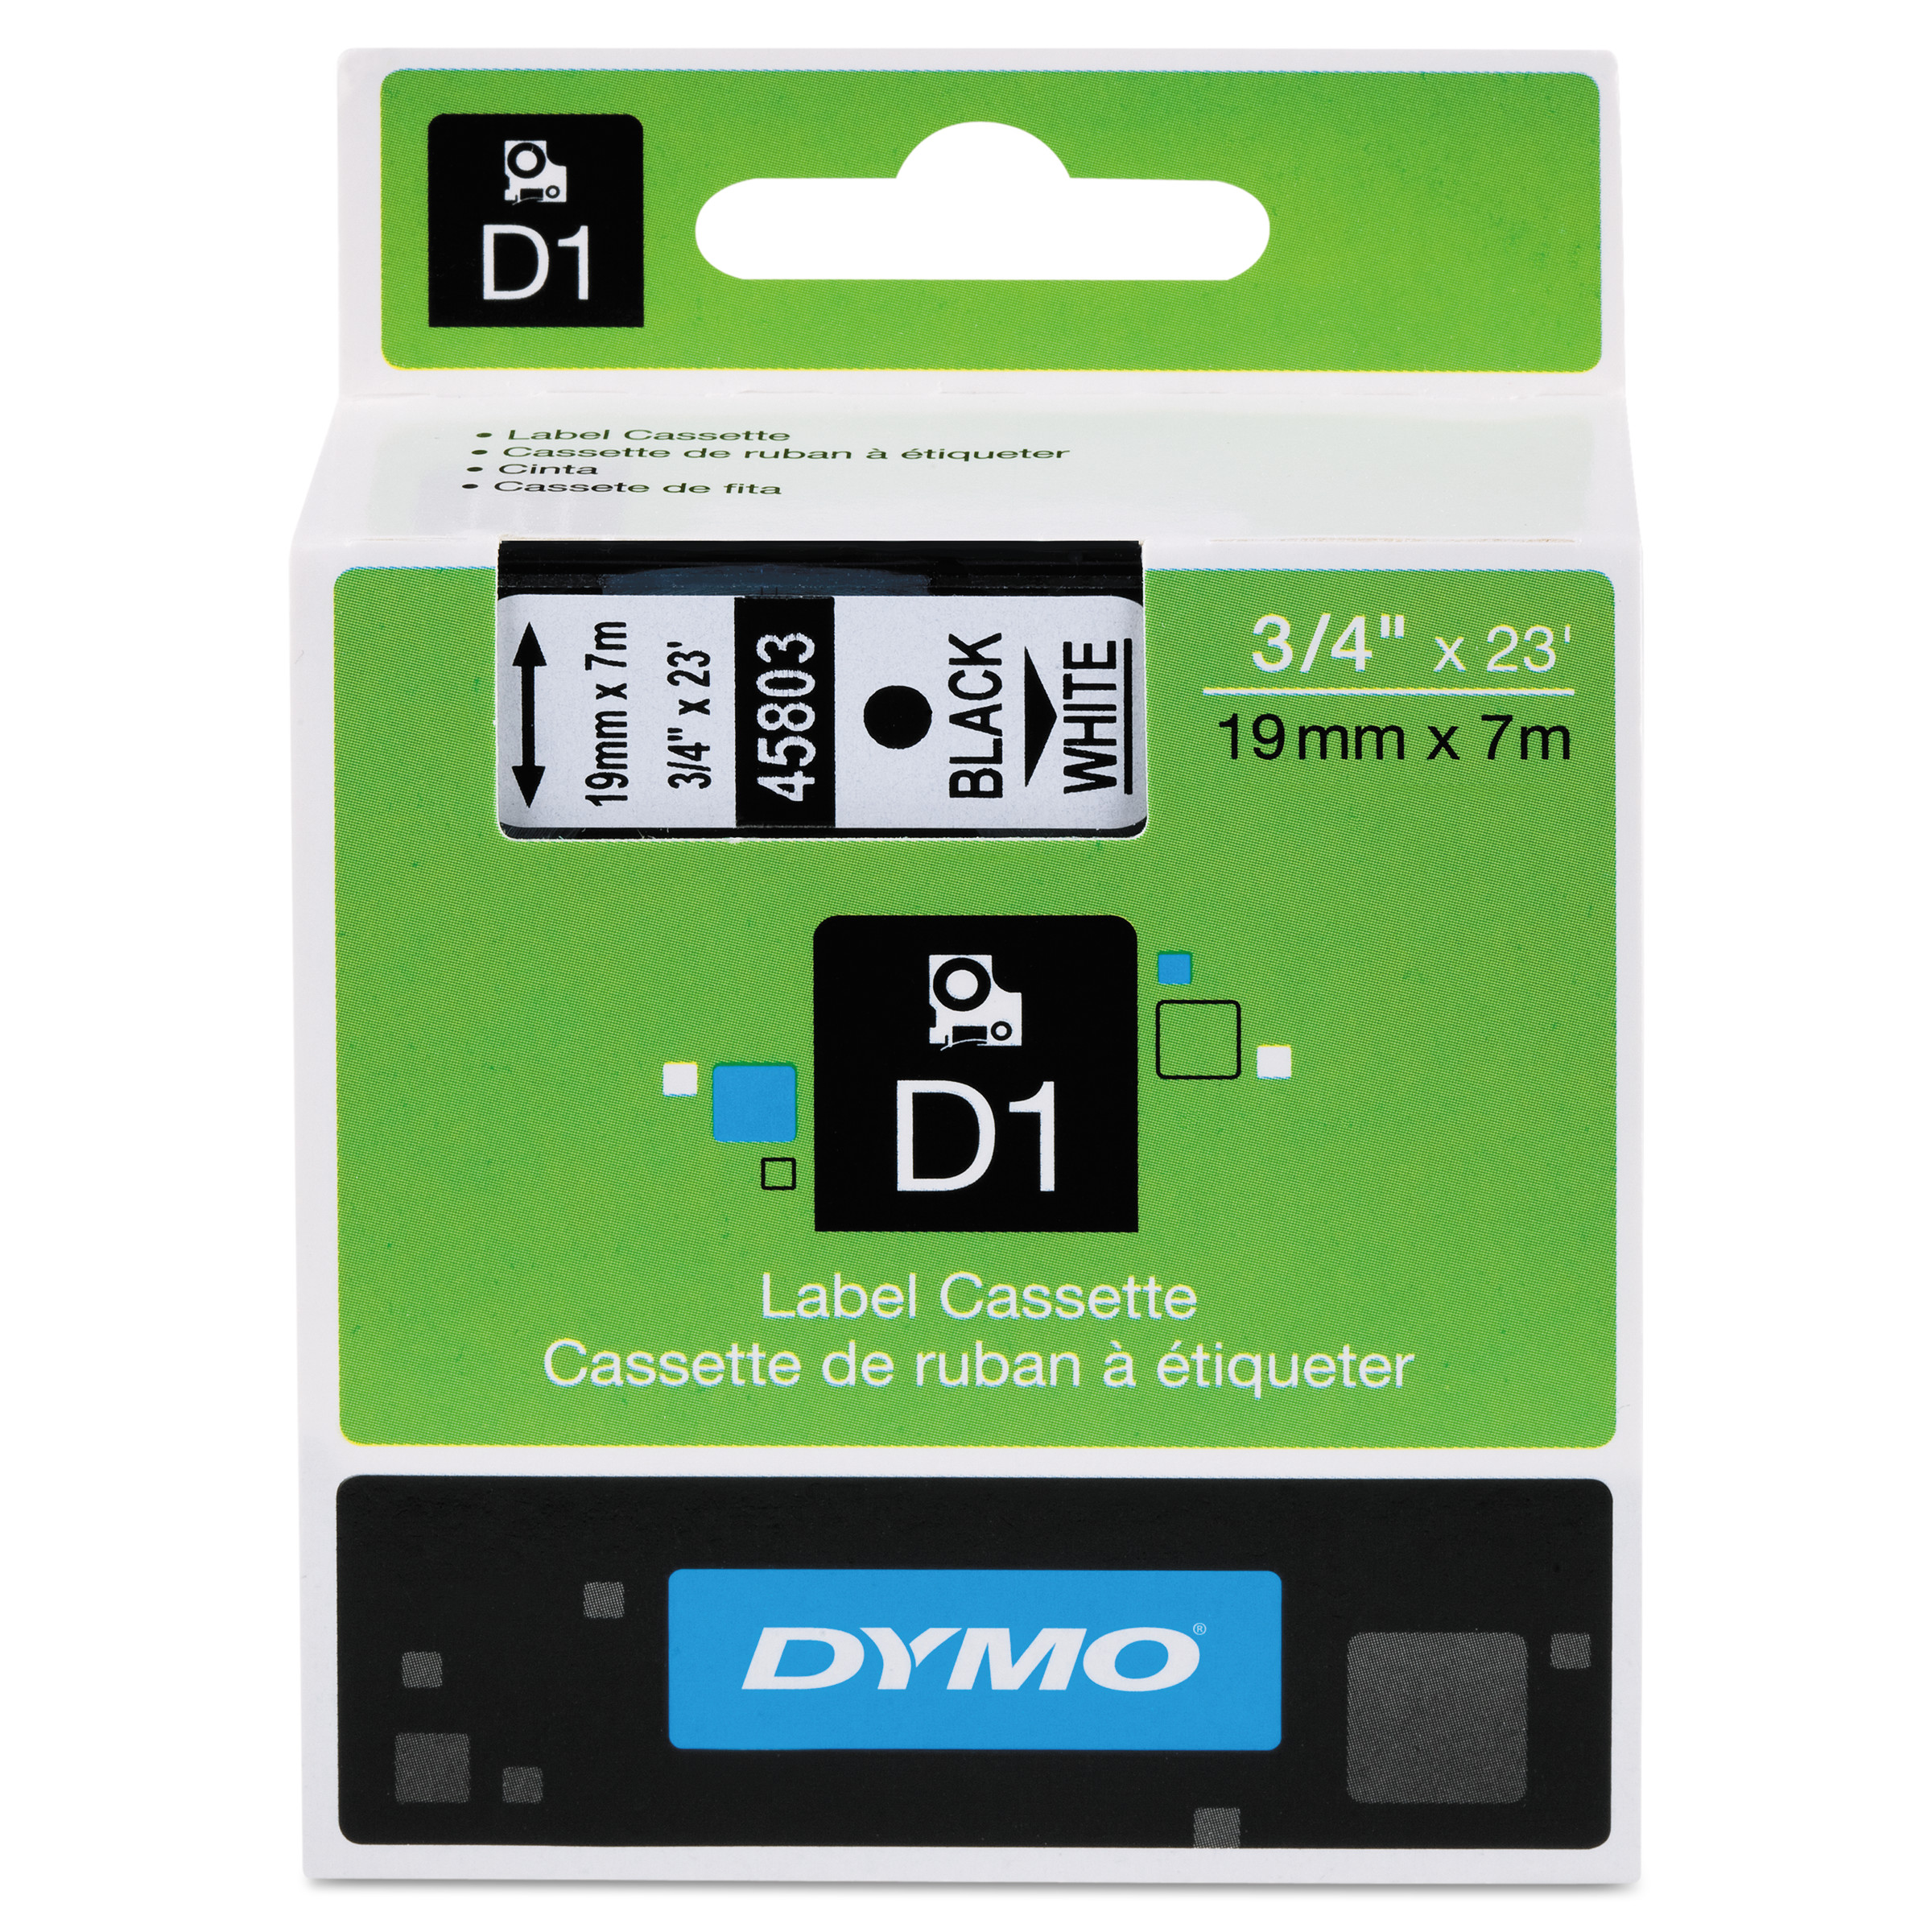 """DYMO D1 High-Performance Polyester Removable Label Tape, 3/4"""" x 23 ft, Black on White"""